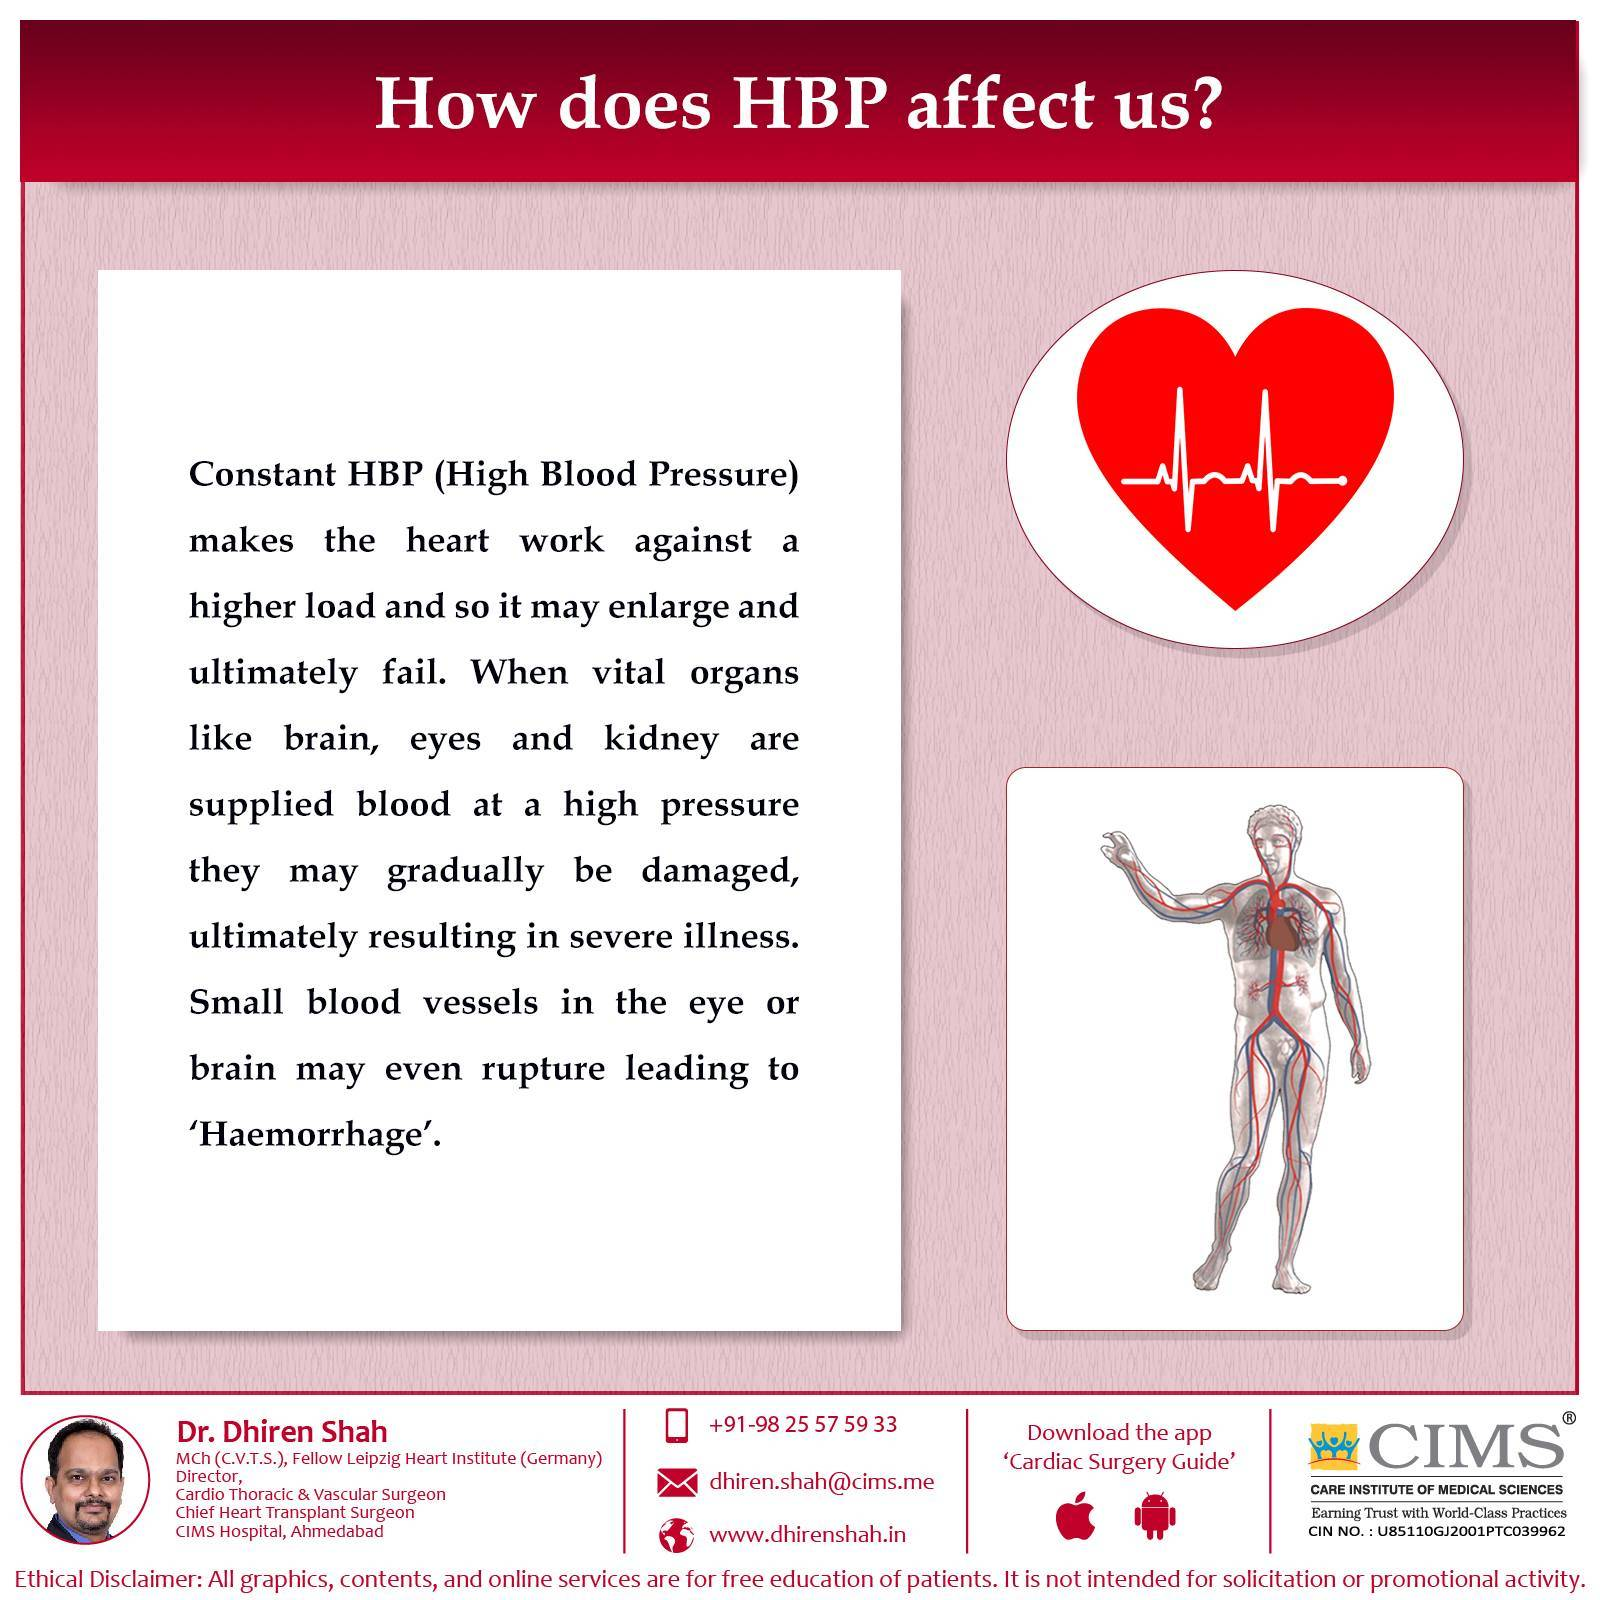 How does HBP affect us?